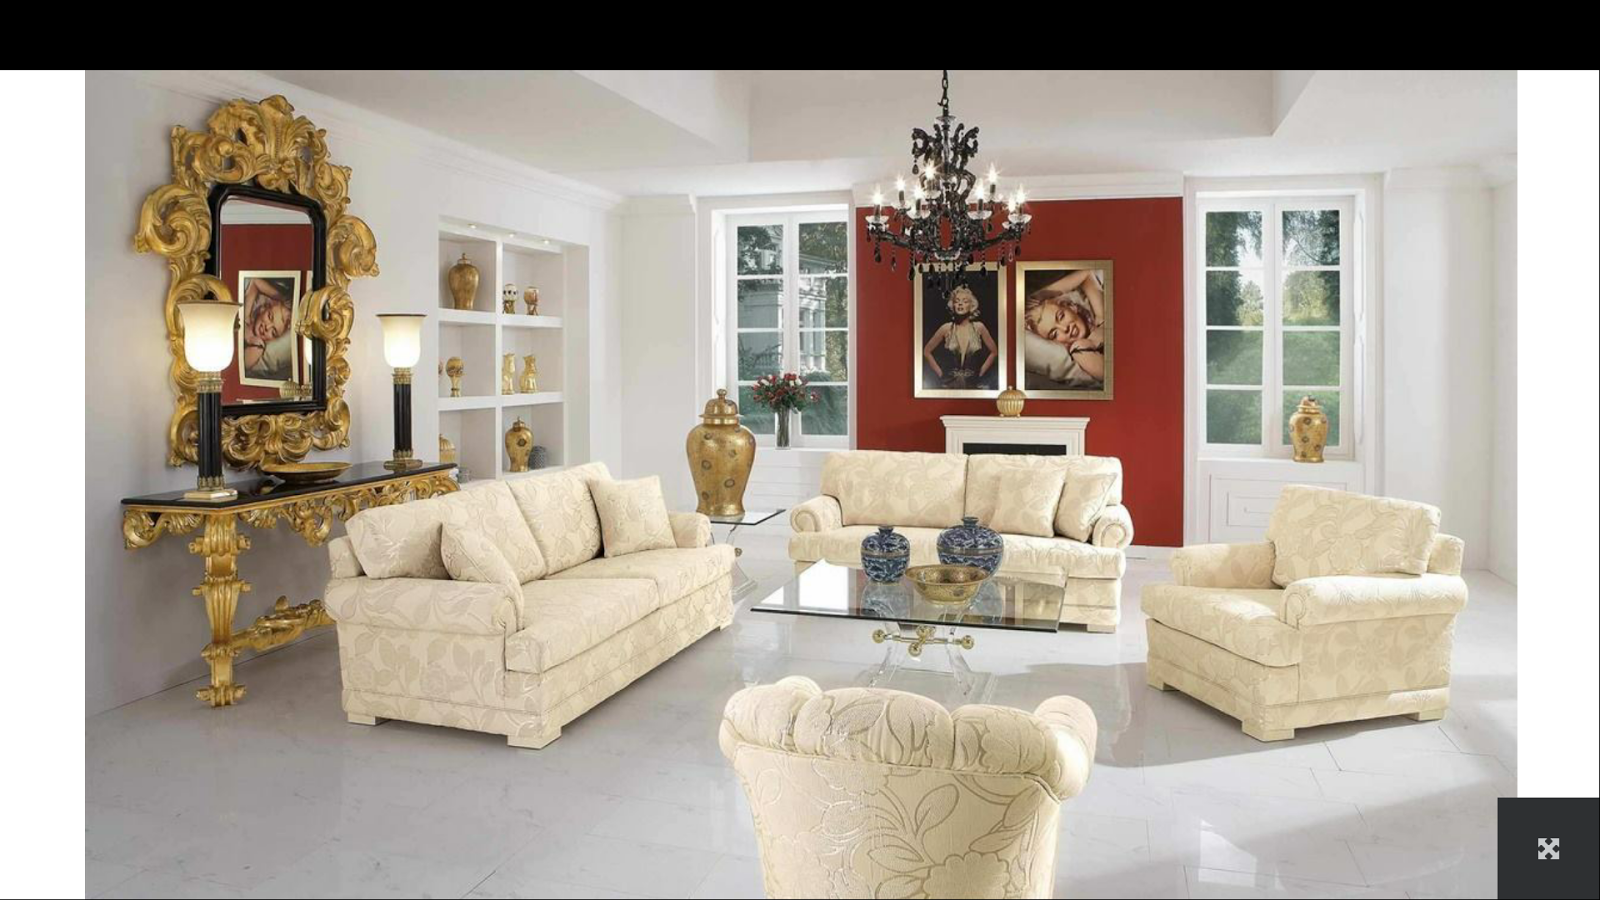 Living Room Beautiful Living Rooms Images beautiful living rooms android apps on google play screenshot